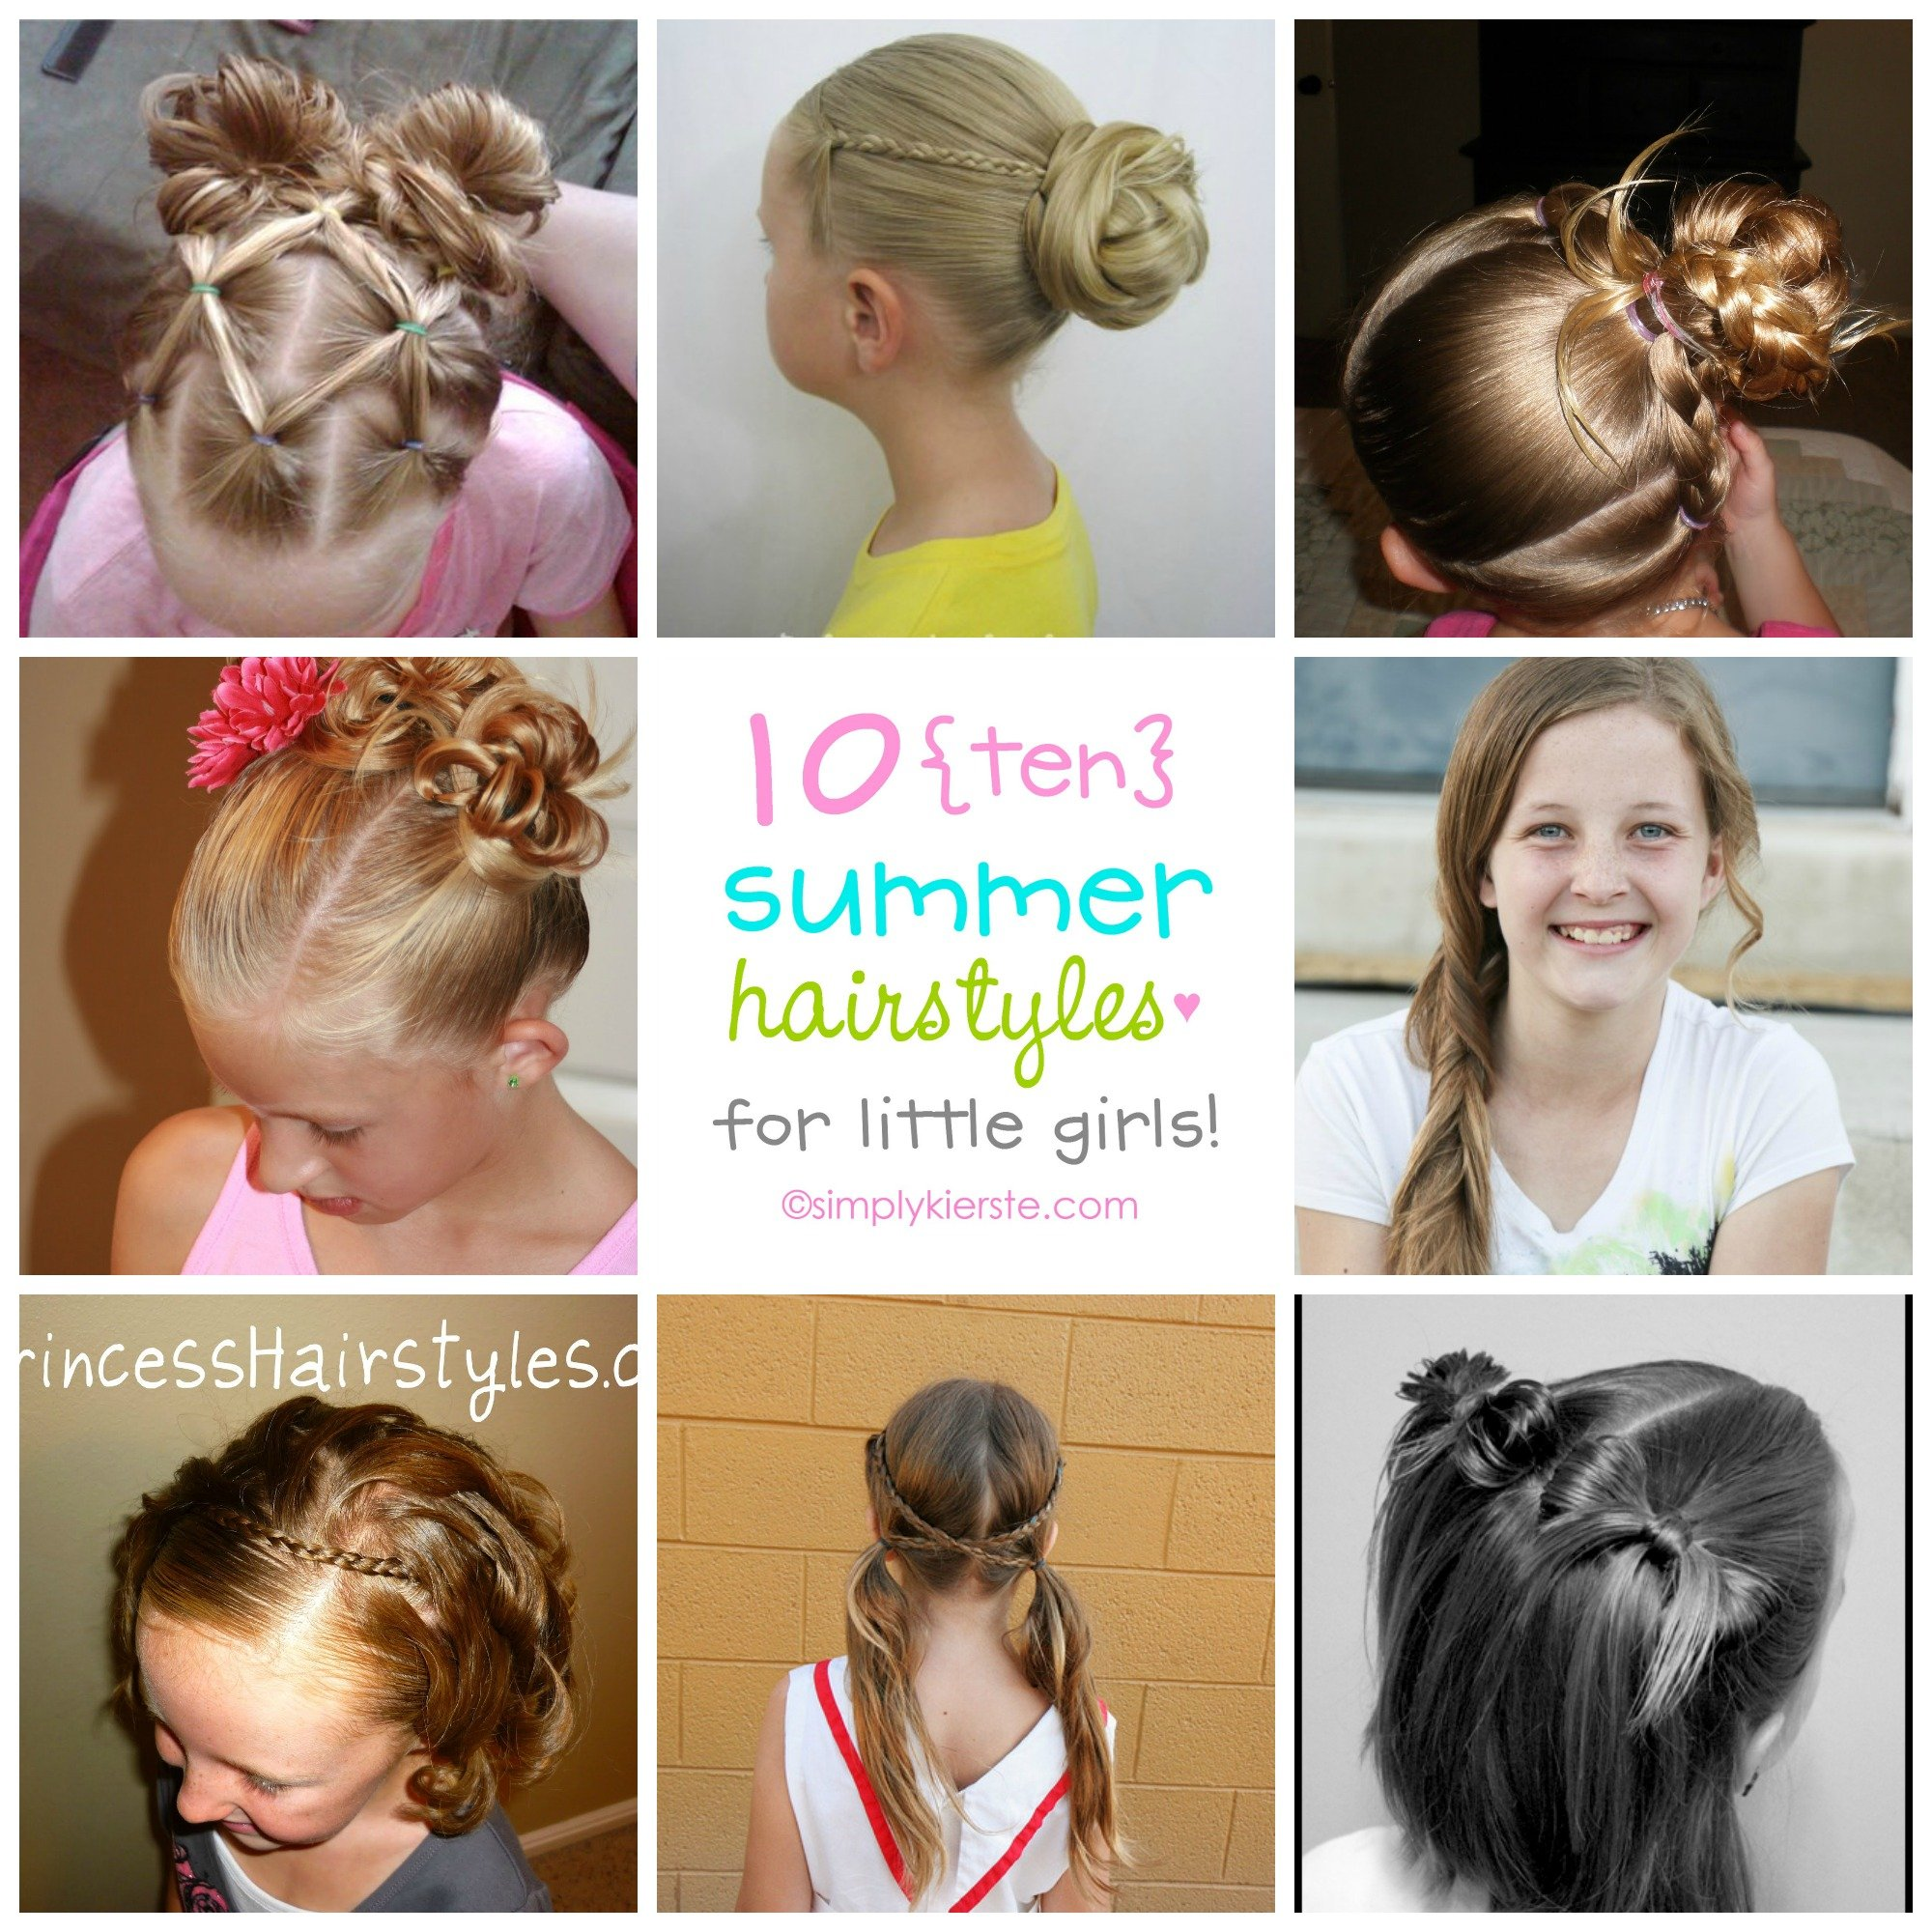 10 Fun Summer Hairstyles for Little Girls!